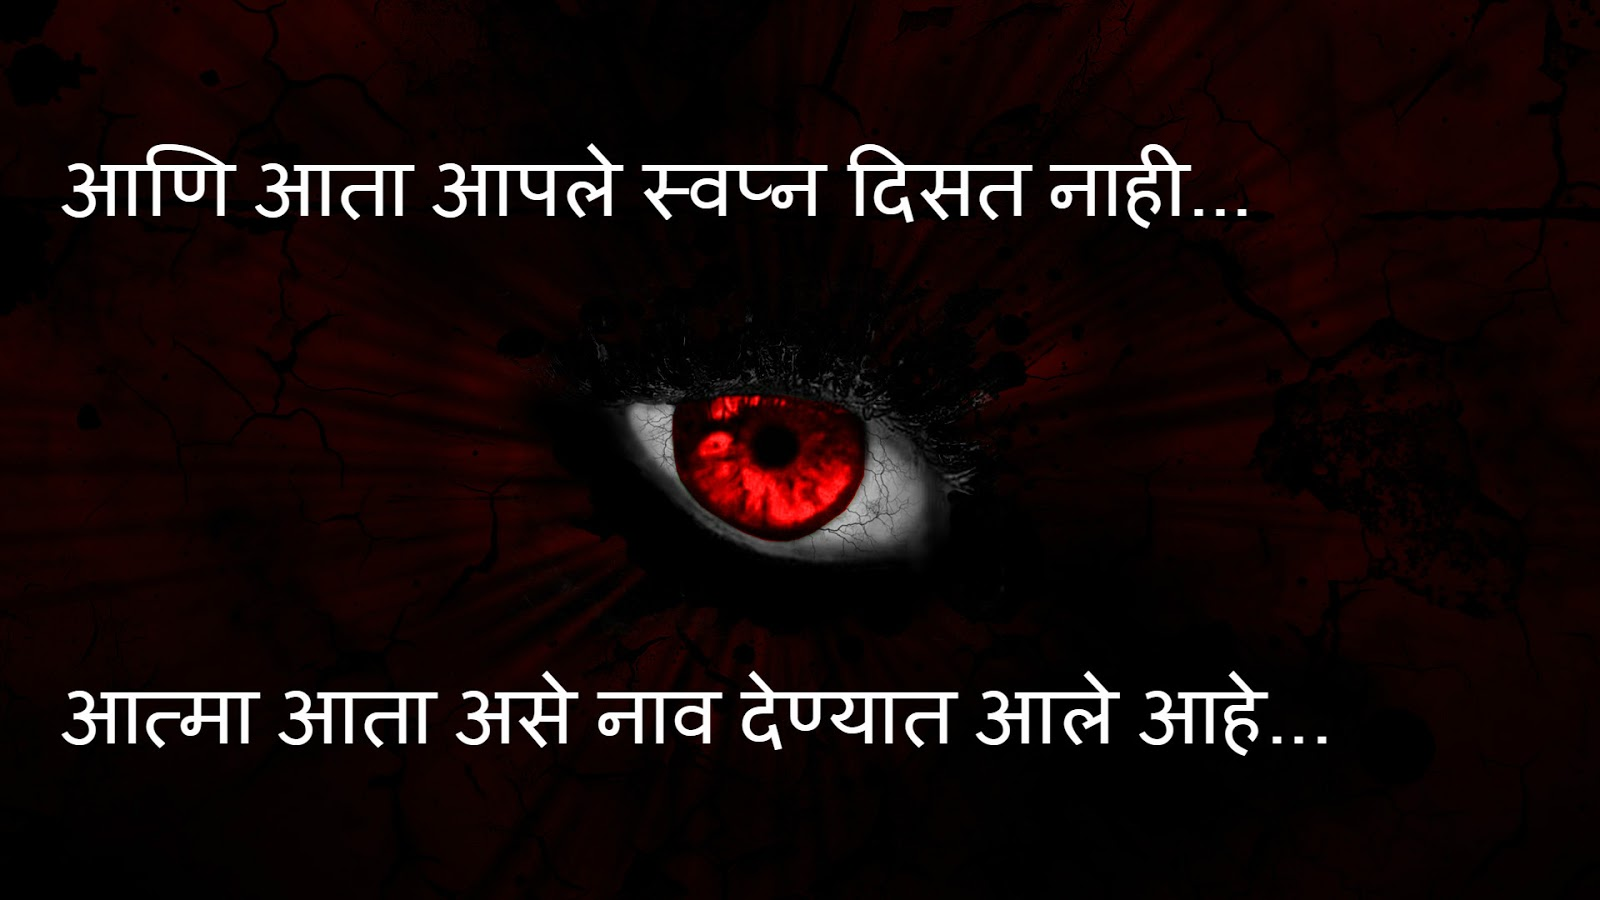 marathi font shayari love sad girlfriend images